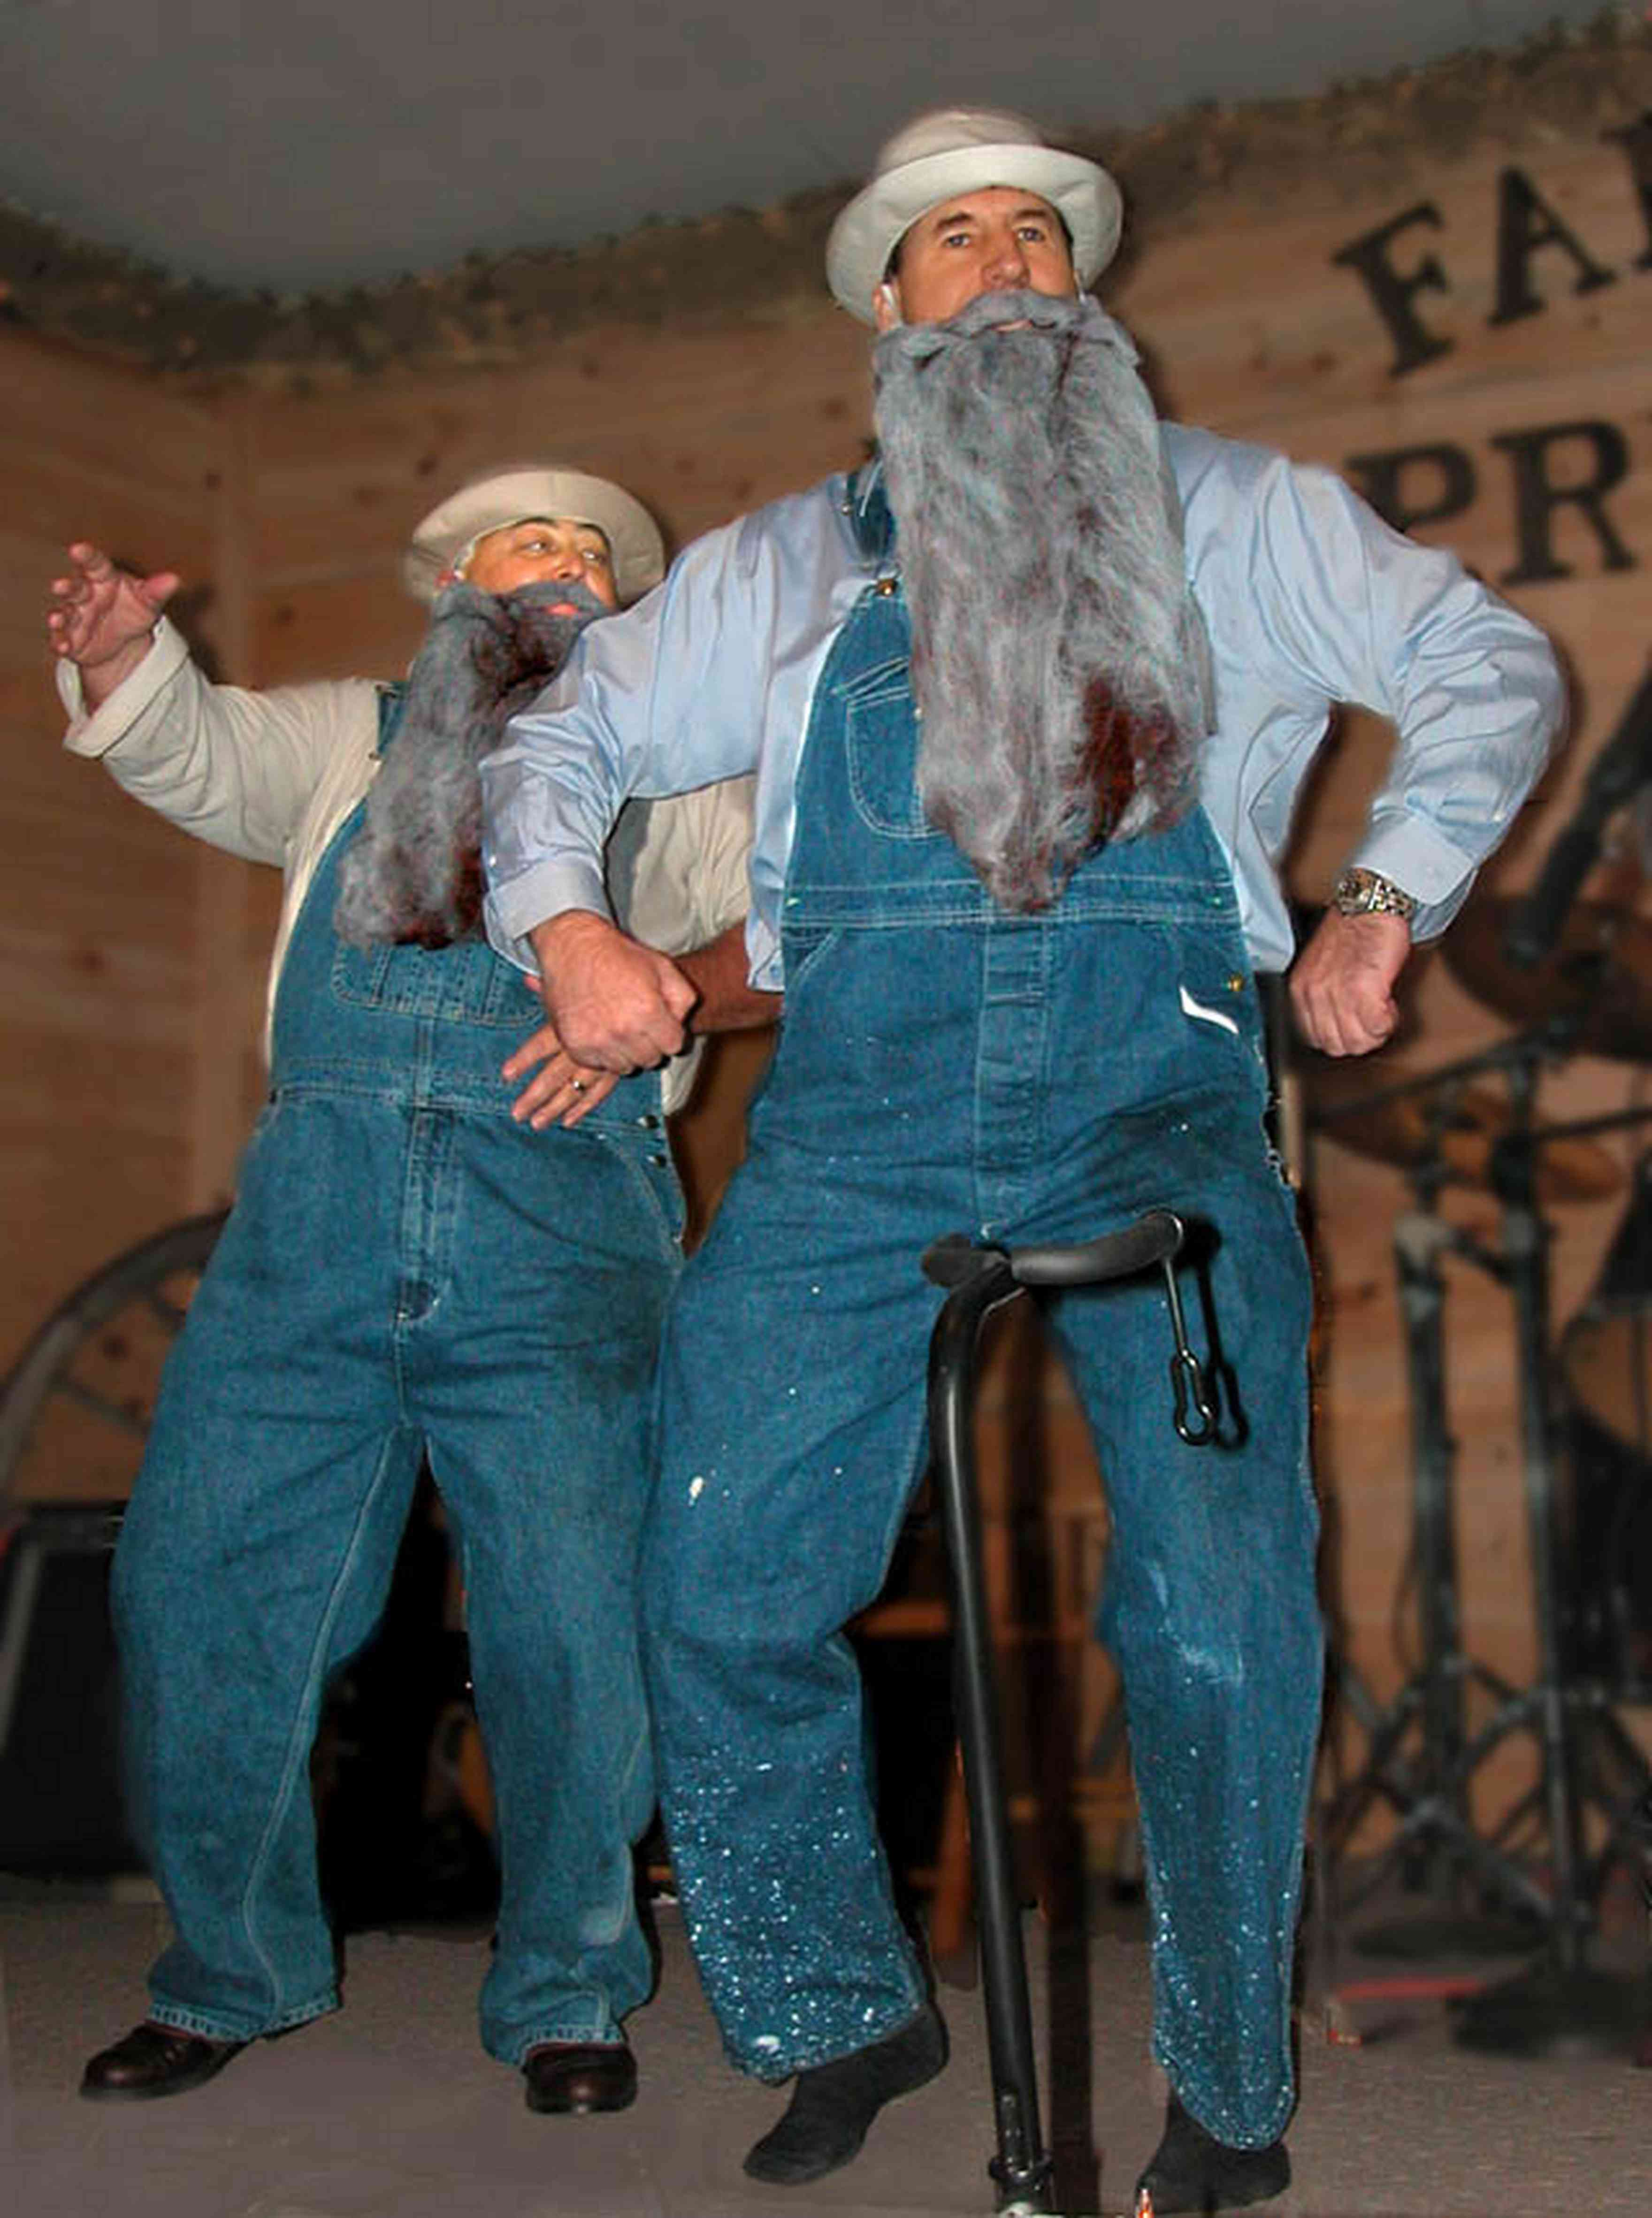 Chumuckla:-Farmers-Opry_03.jpg:  country and western music, beard, farmer, entertainer, overalls, coveralls, redneck farmer